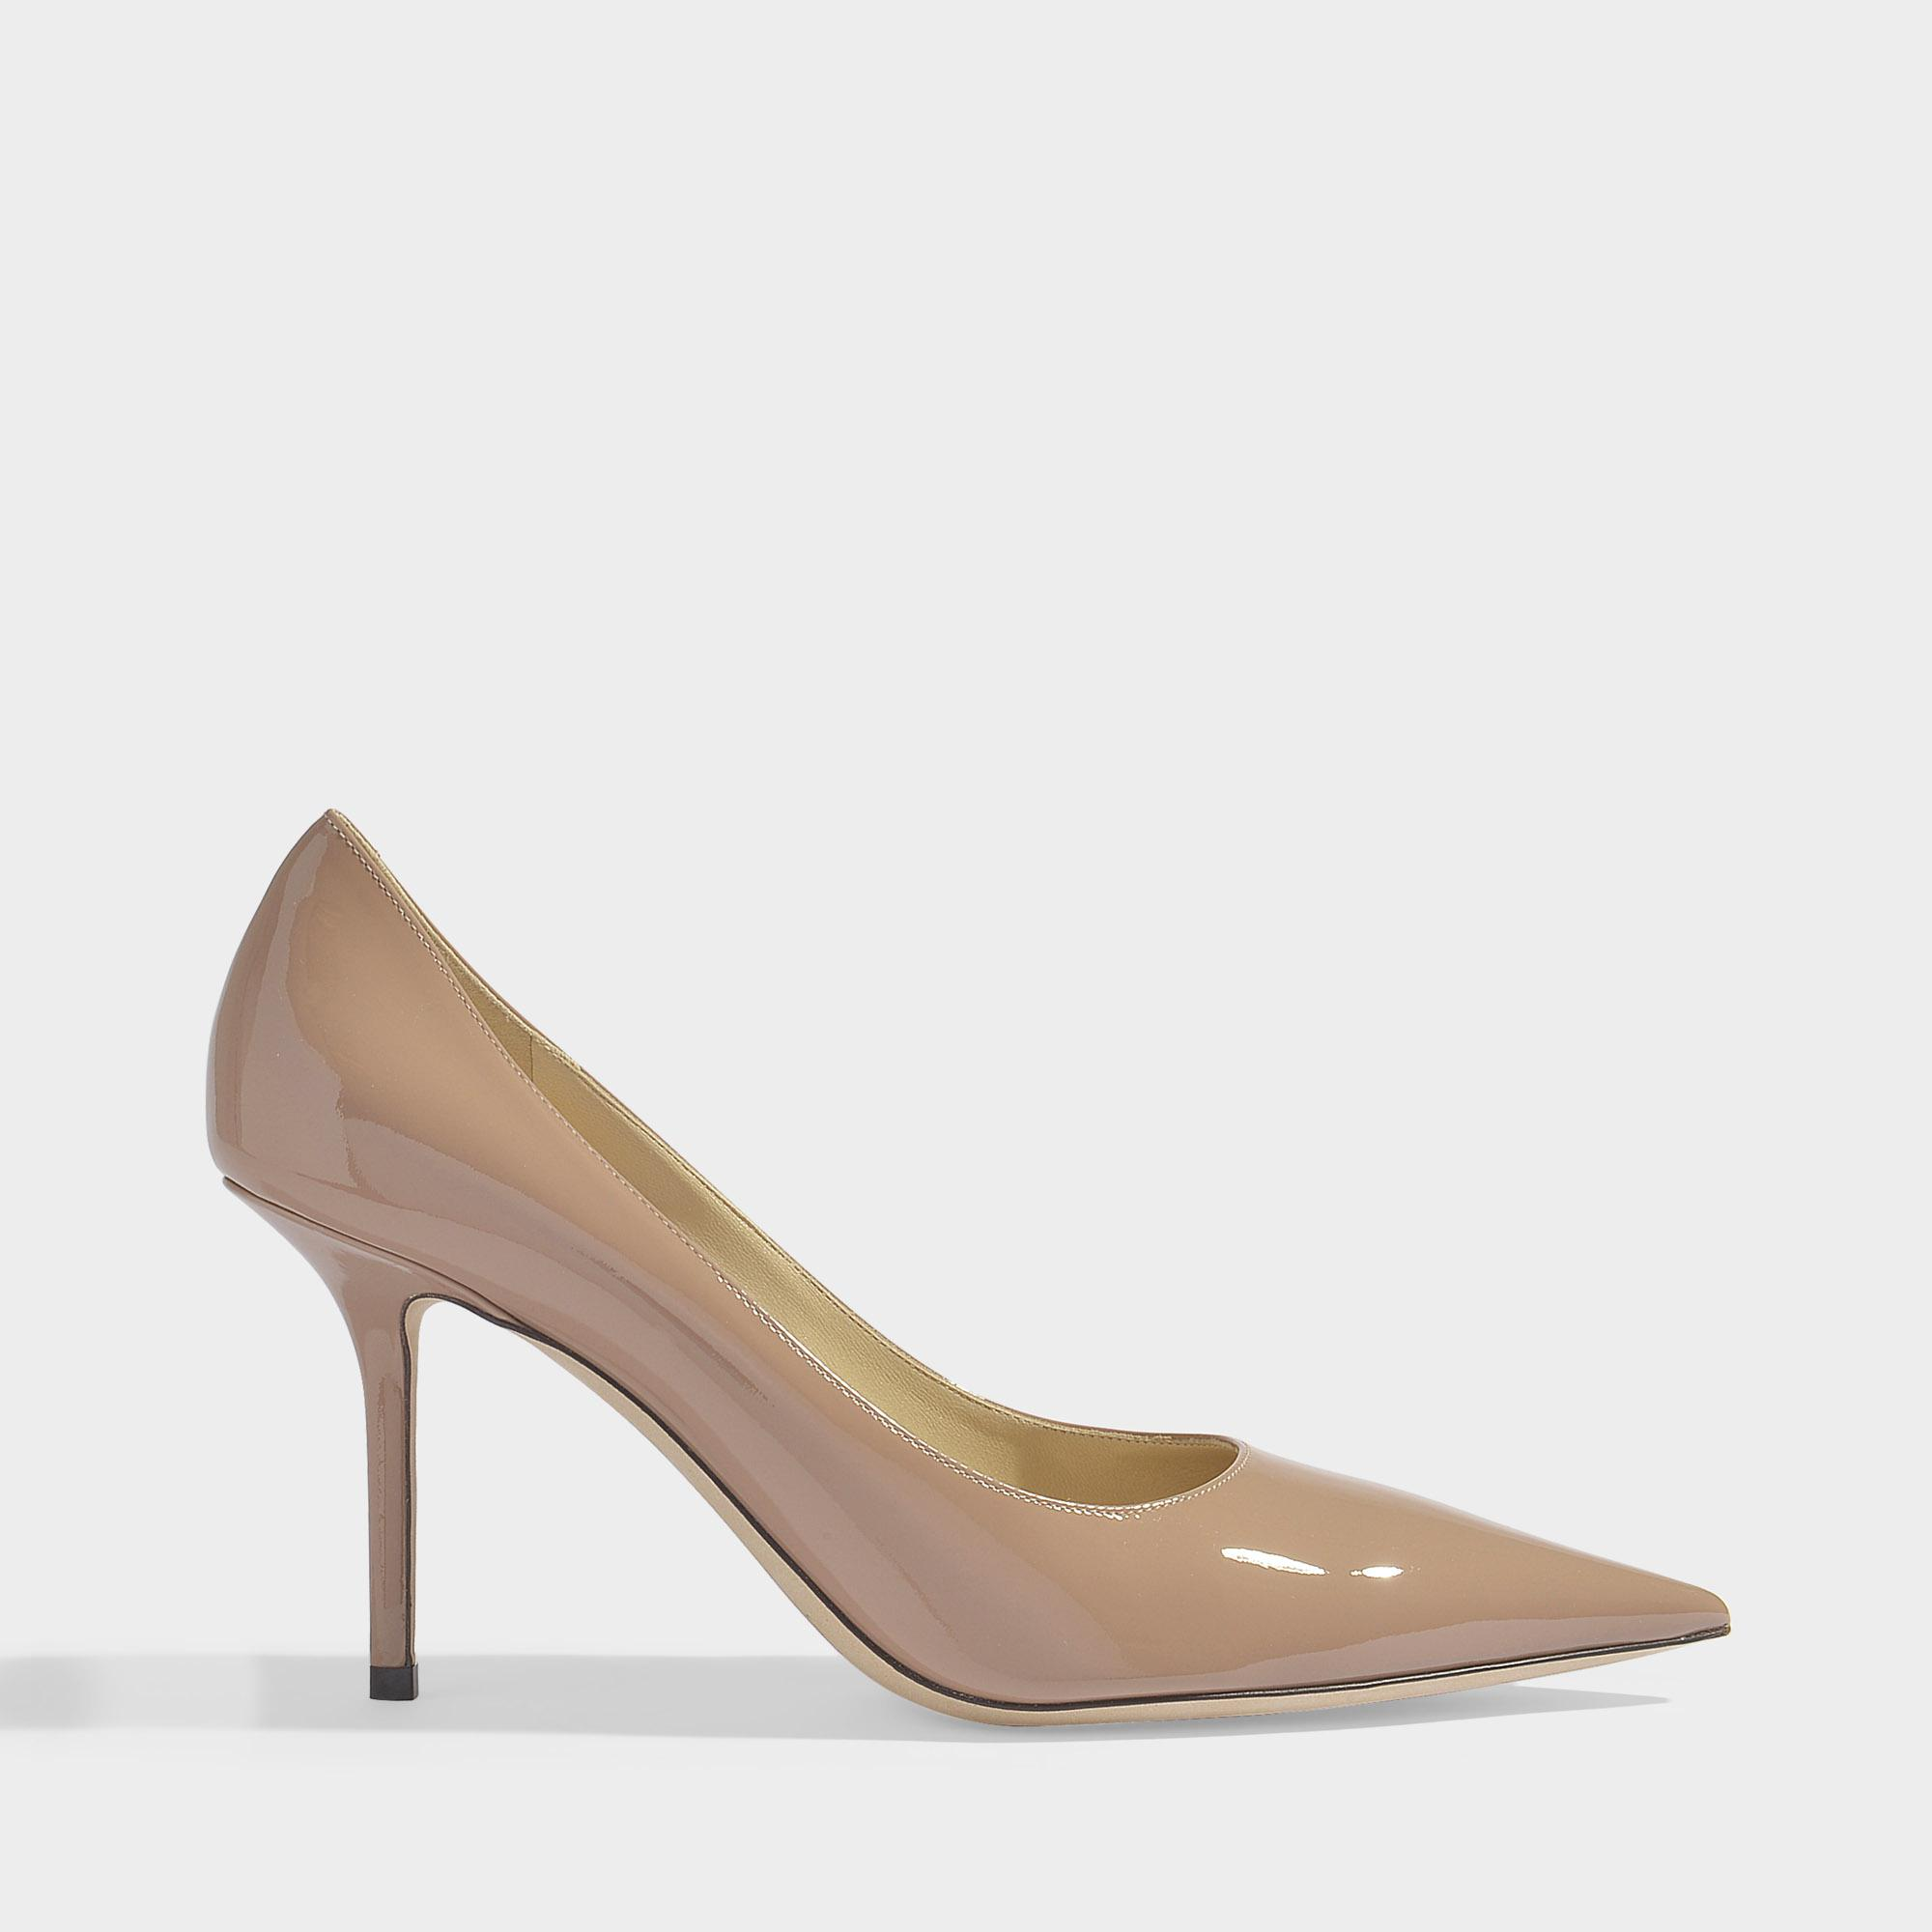 1b18a3d186b8 Jimmy Choo. Women s Love 85 Patent Pointed Pumps In Ballet Pink Patent  Leather